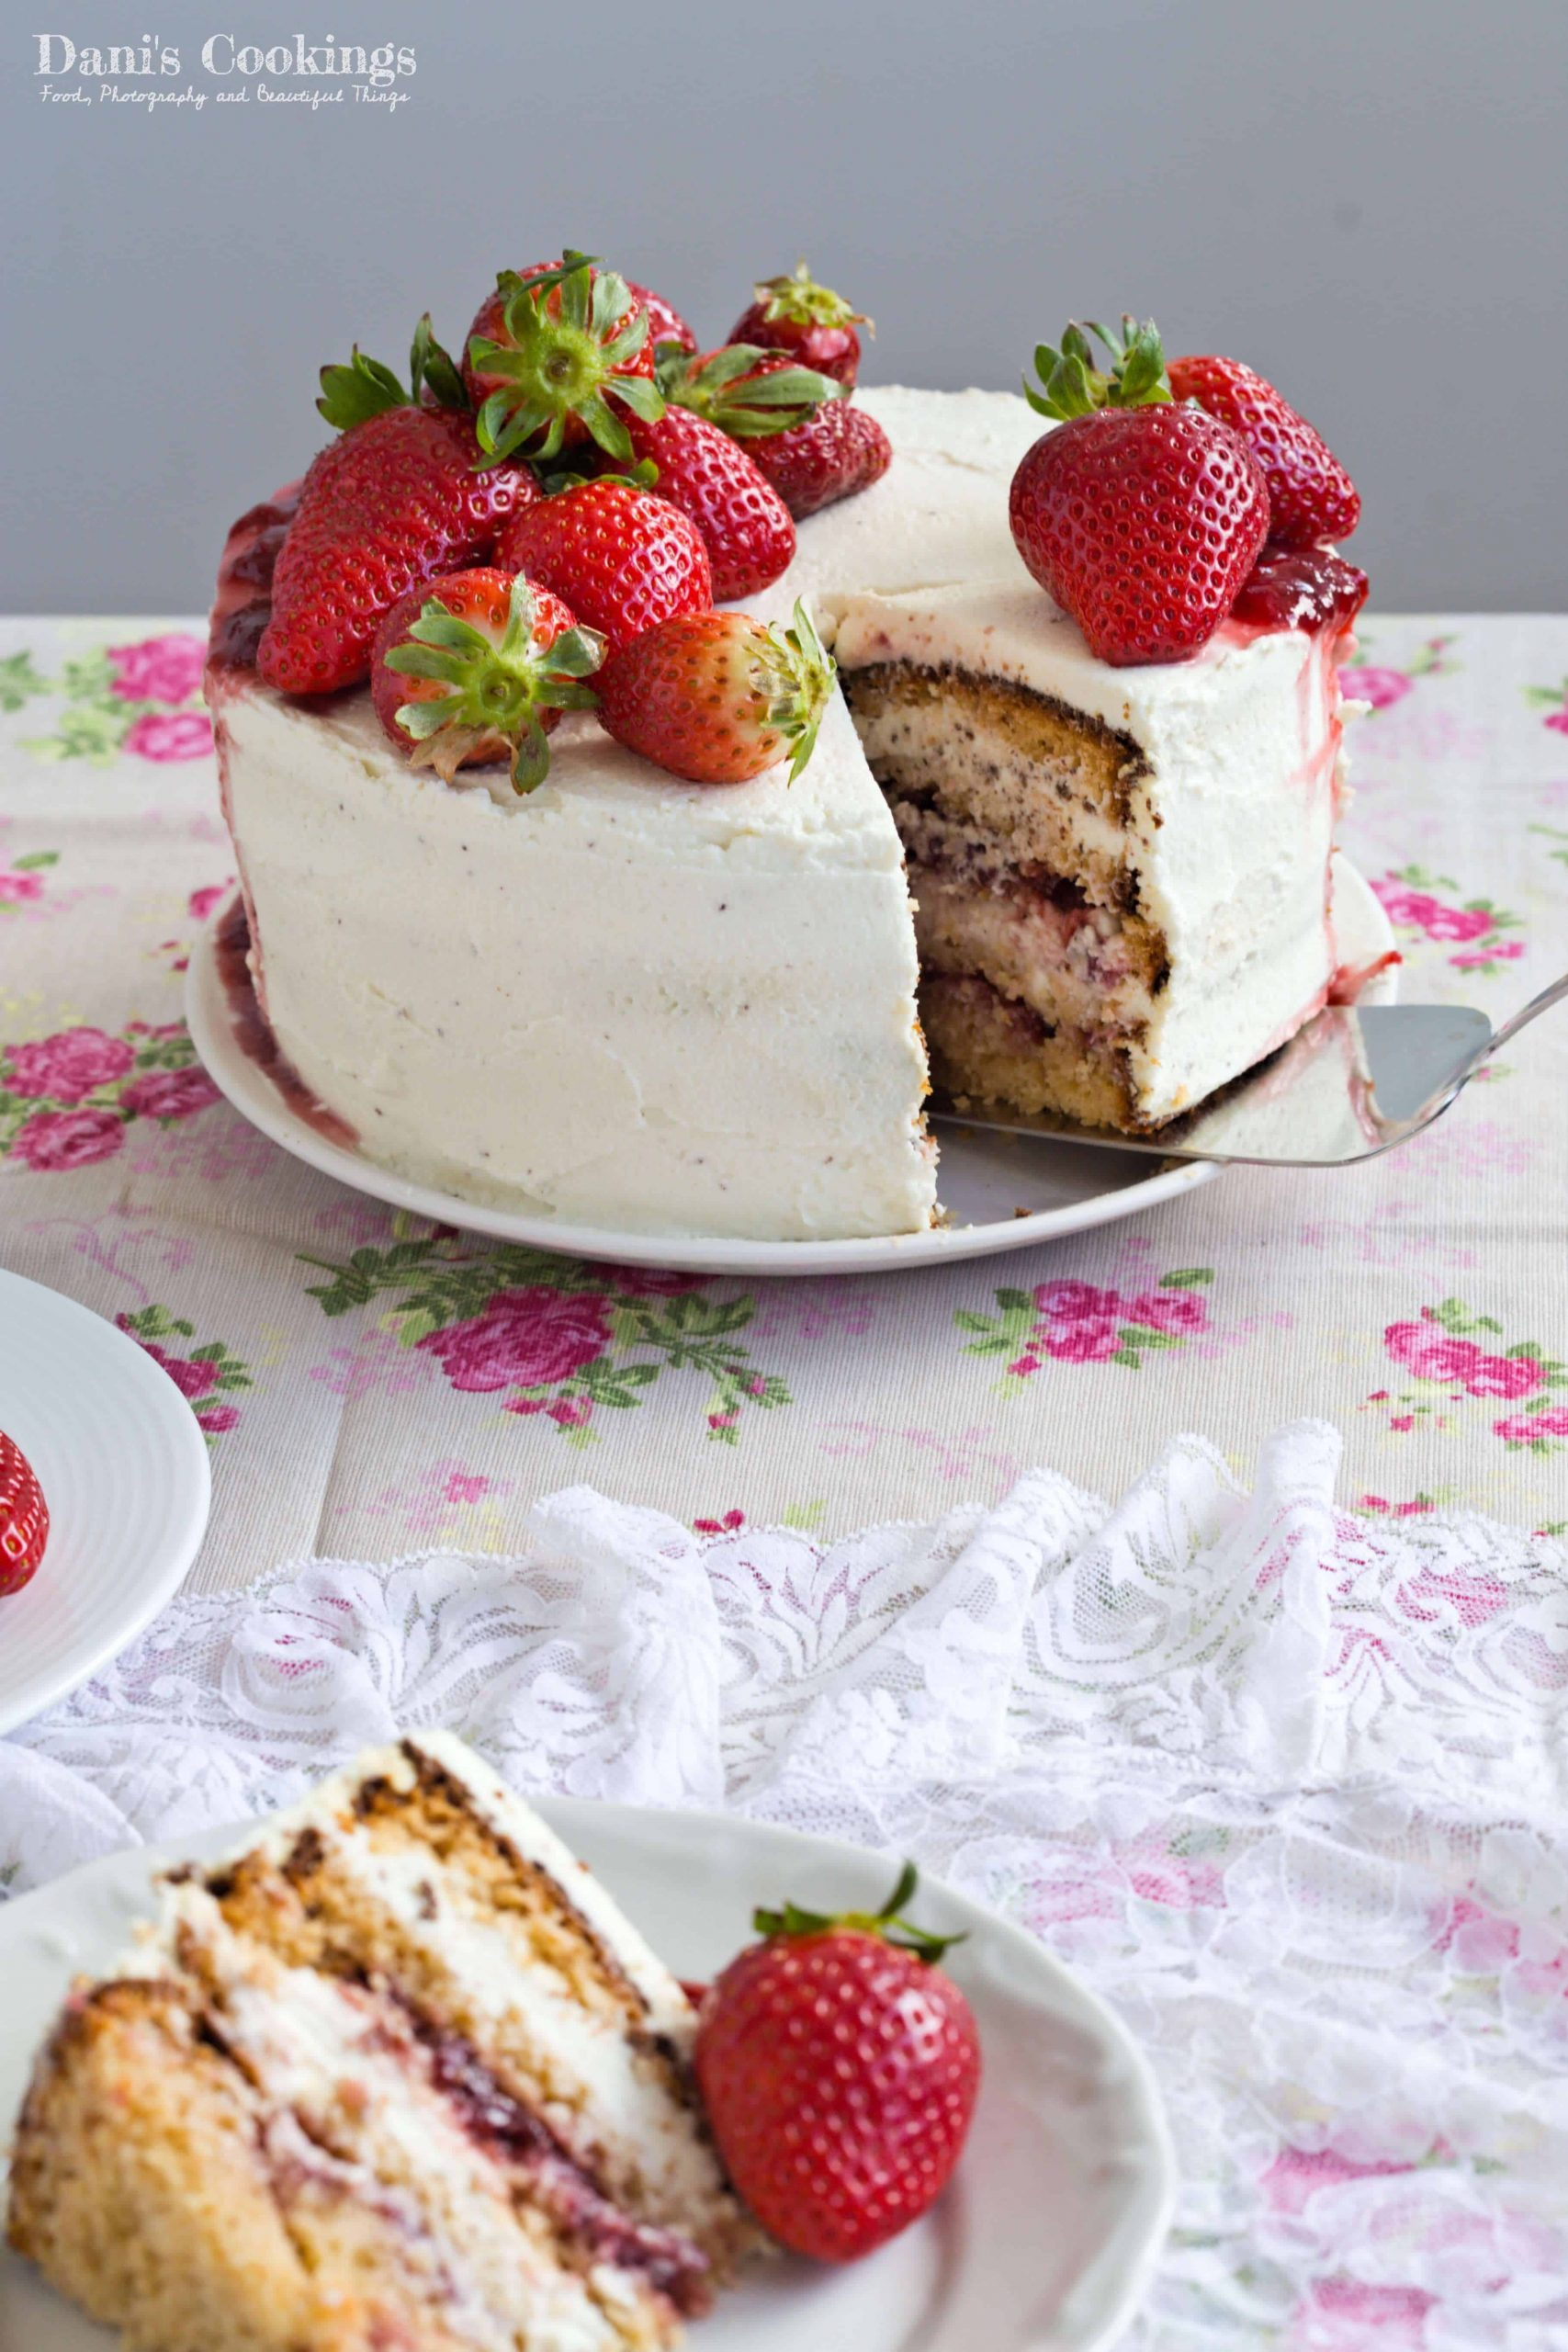 a sliced cake with strawberries